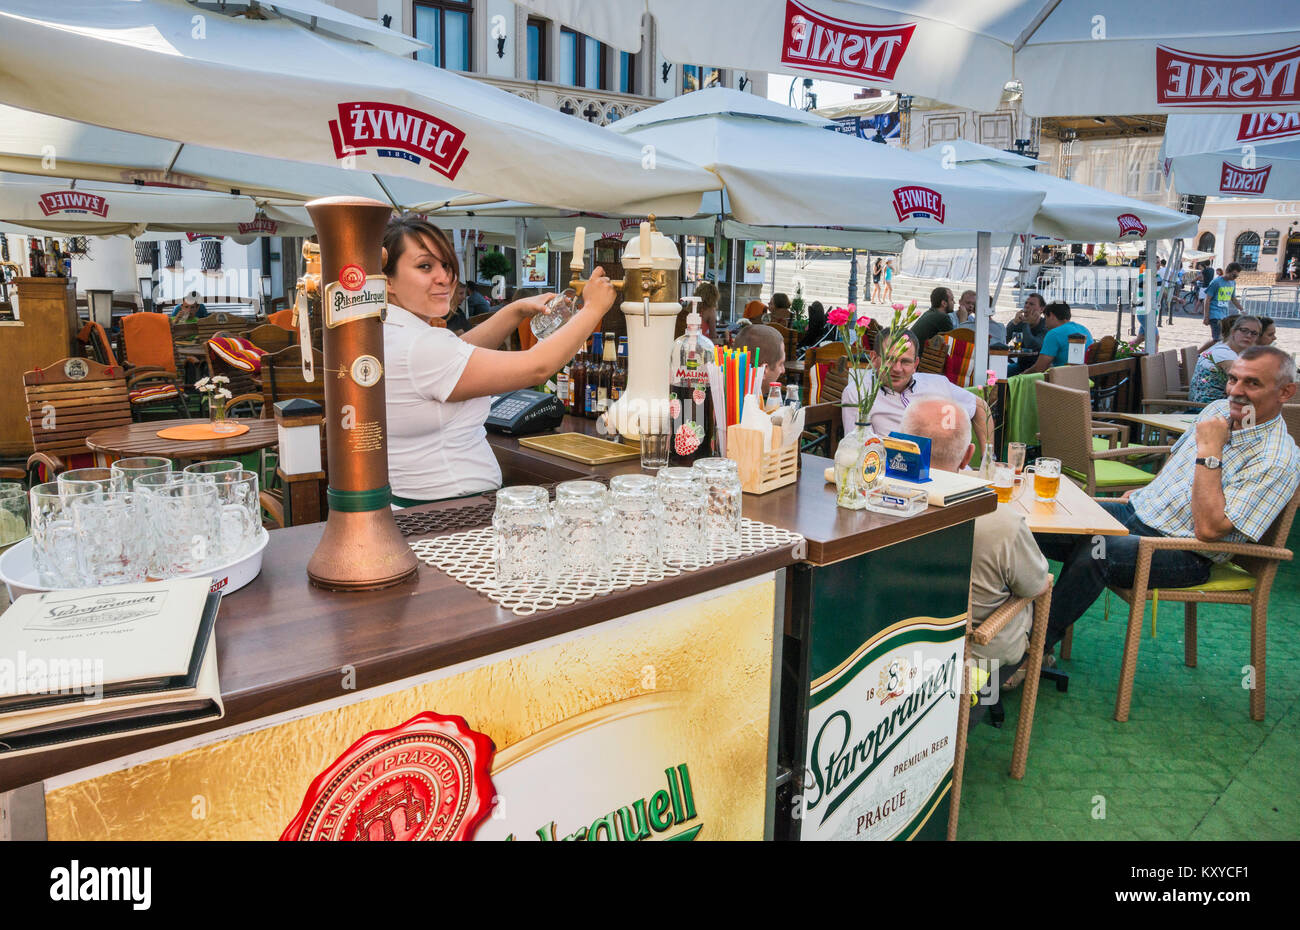 Barmaid serving beer at beer garden at Rynek or Market Square in Rzeszow, Malopolska aka Lesser Poland region, Poland - Stock Image